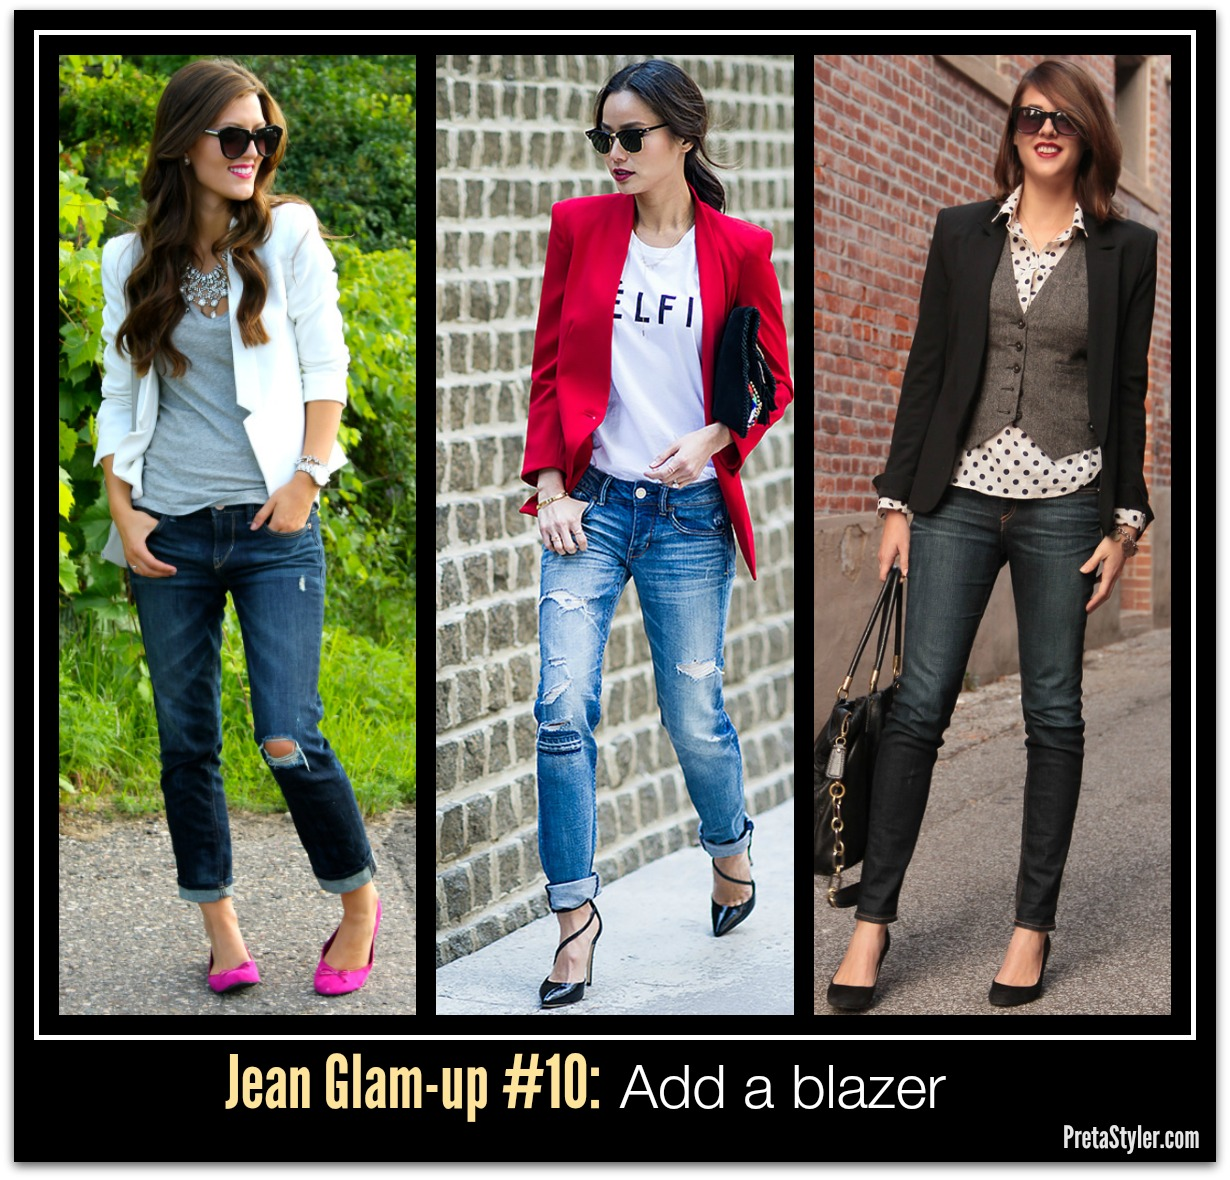 How to Glam-up Blue Jeans #10